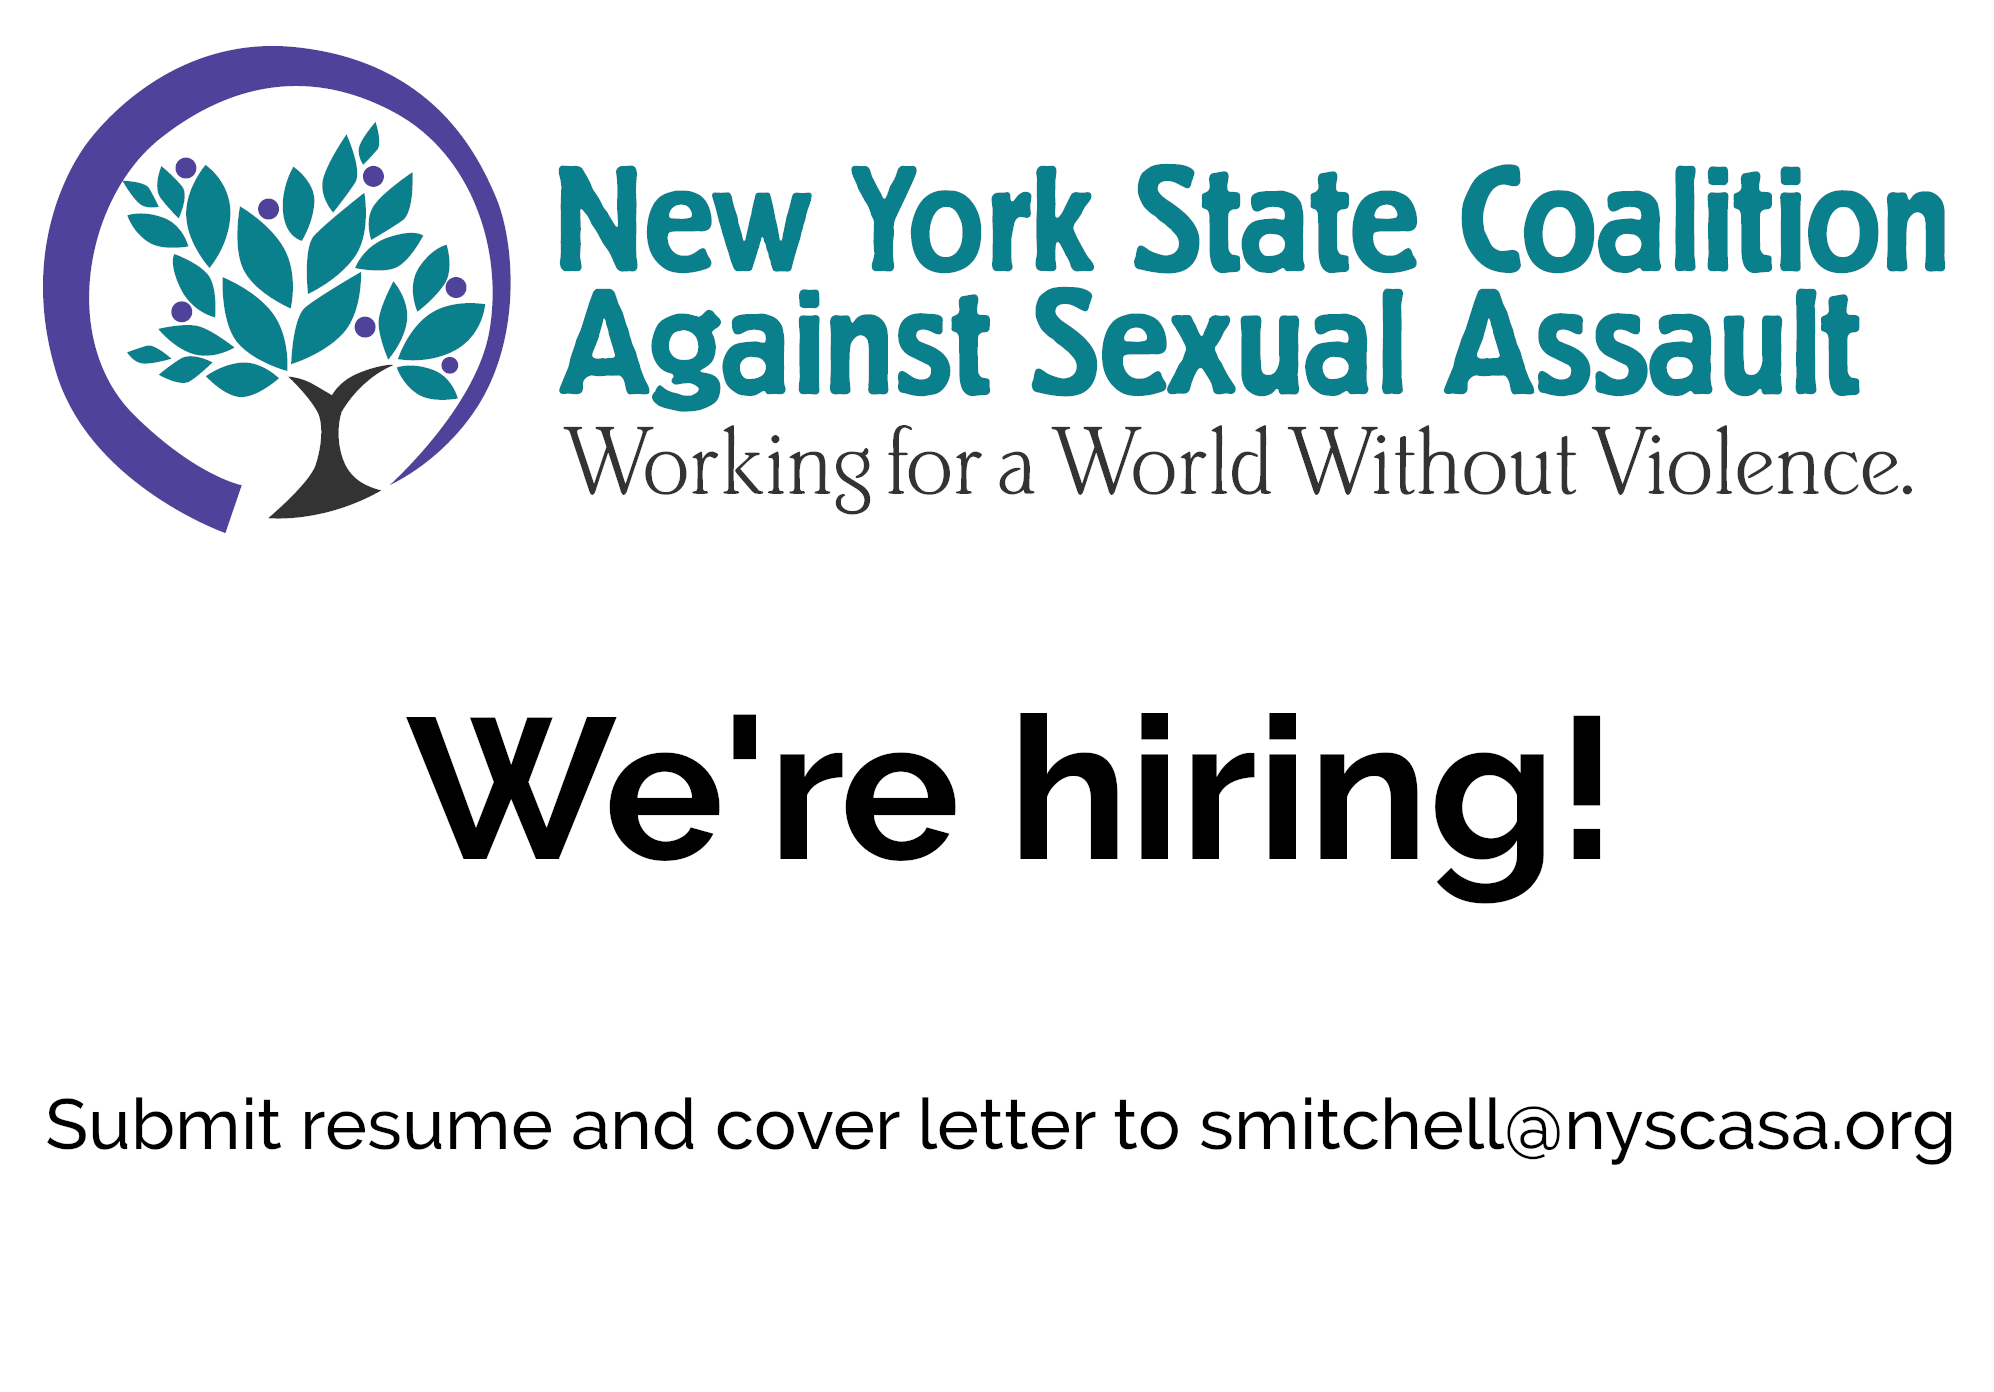 New York State Coalition Against Sexual Assault: Working for a World Without Violence. We're hiring! Submit resume and cover letter to smitchell@nyscasa.org